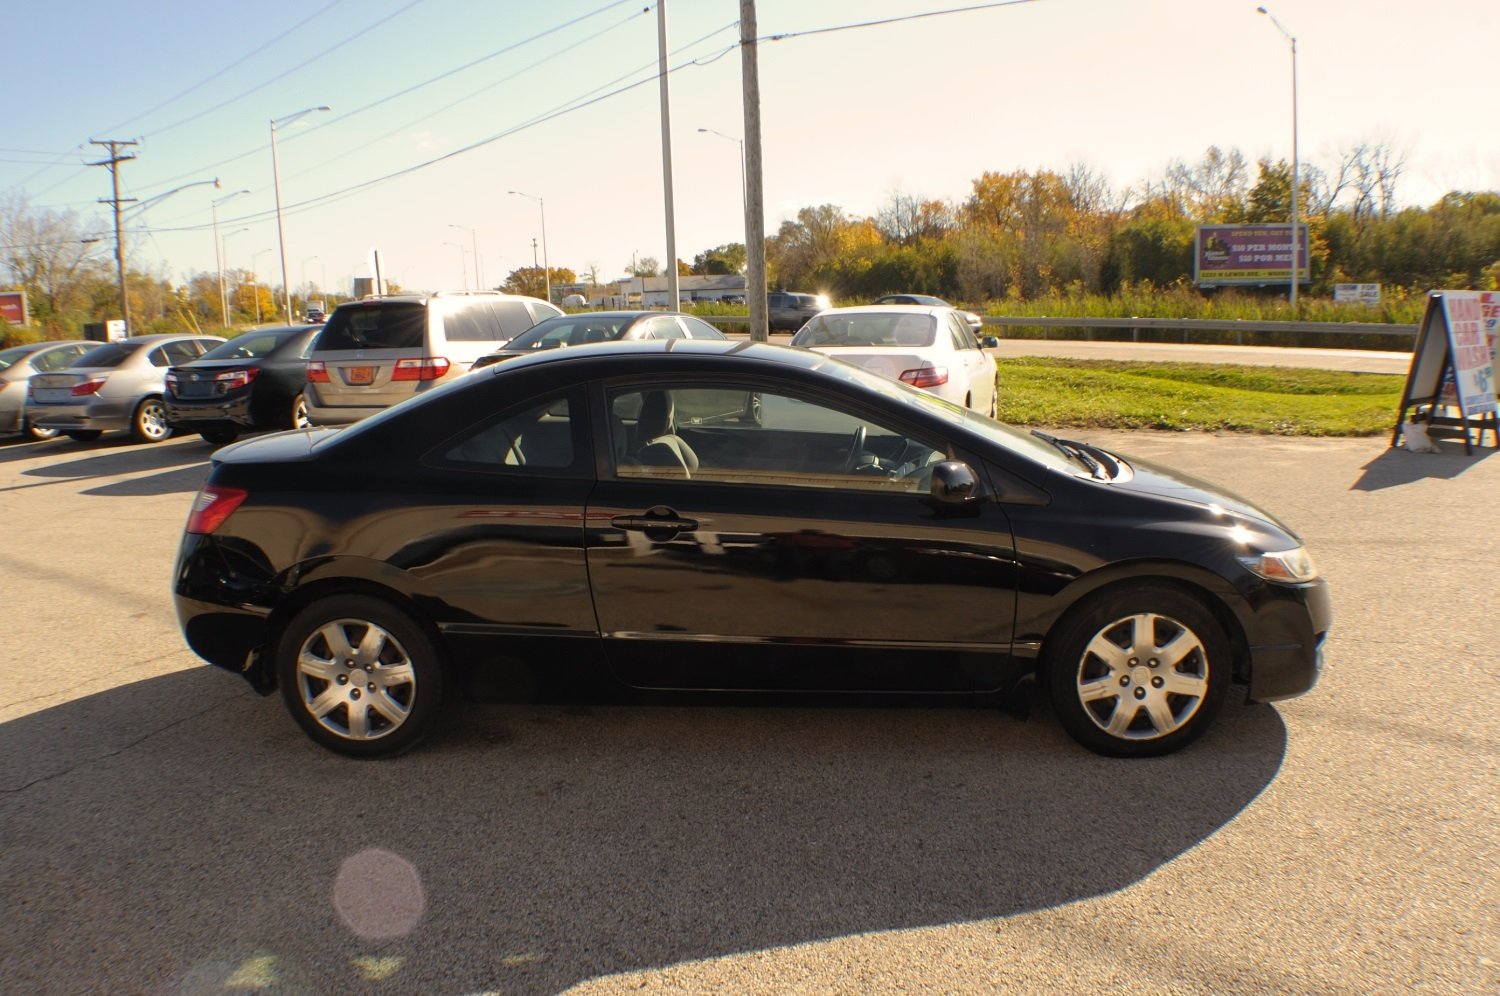 2010 Honda Civic Black Coupe Used Car Sale Bannockburn Barrington Beach Park